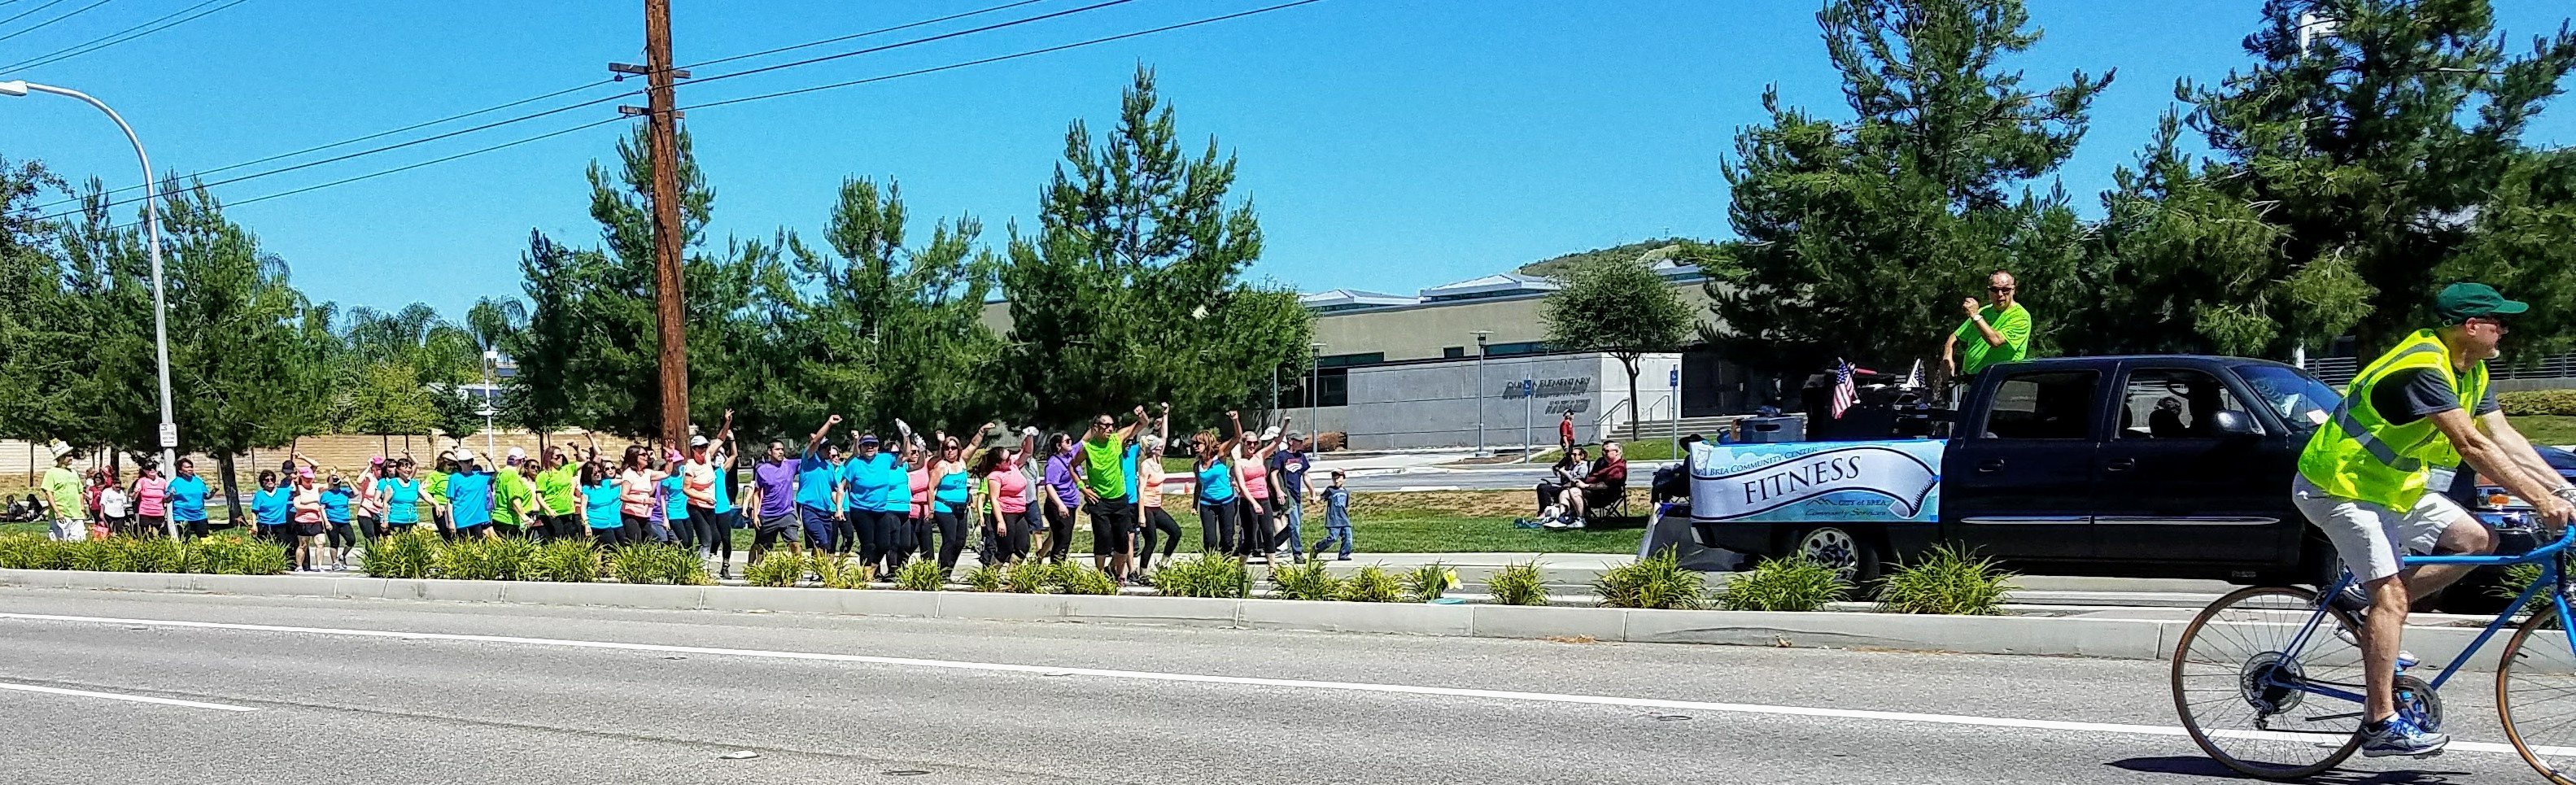 Brea Community Center fitness class (Photo Courtesy of Dena Sommer)